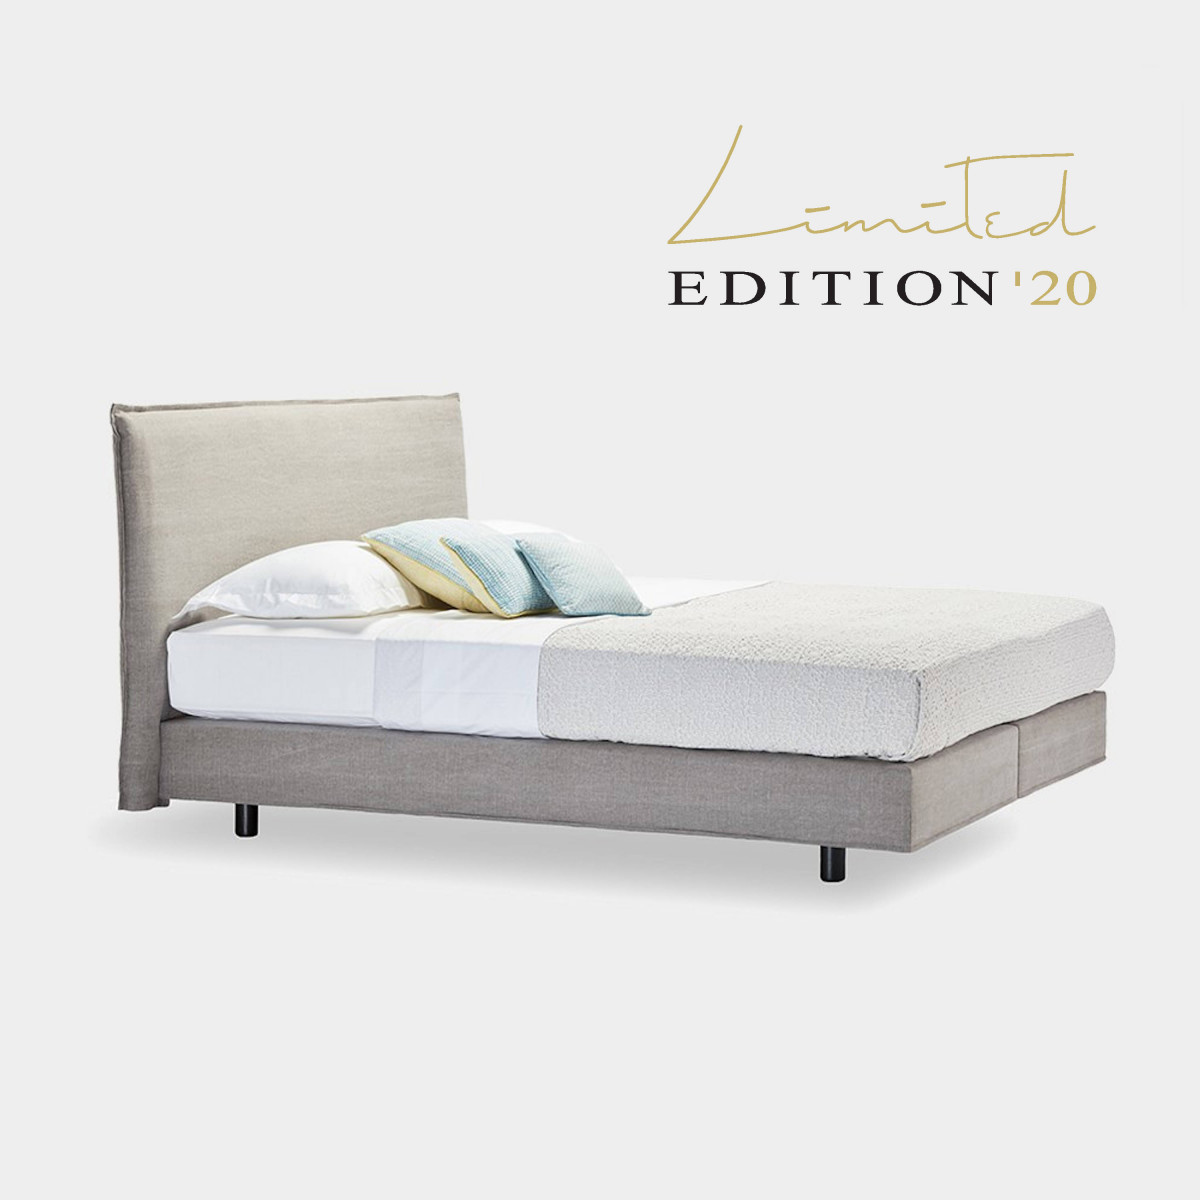 Schramm Limited Edition 20 Purebeds